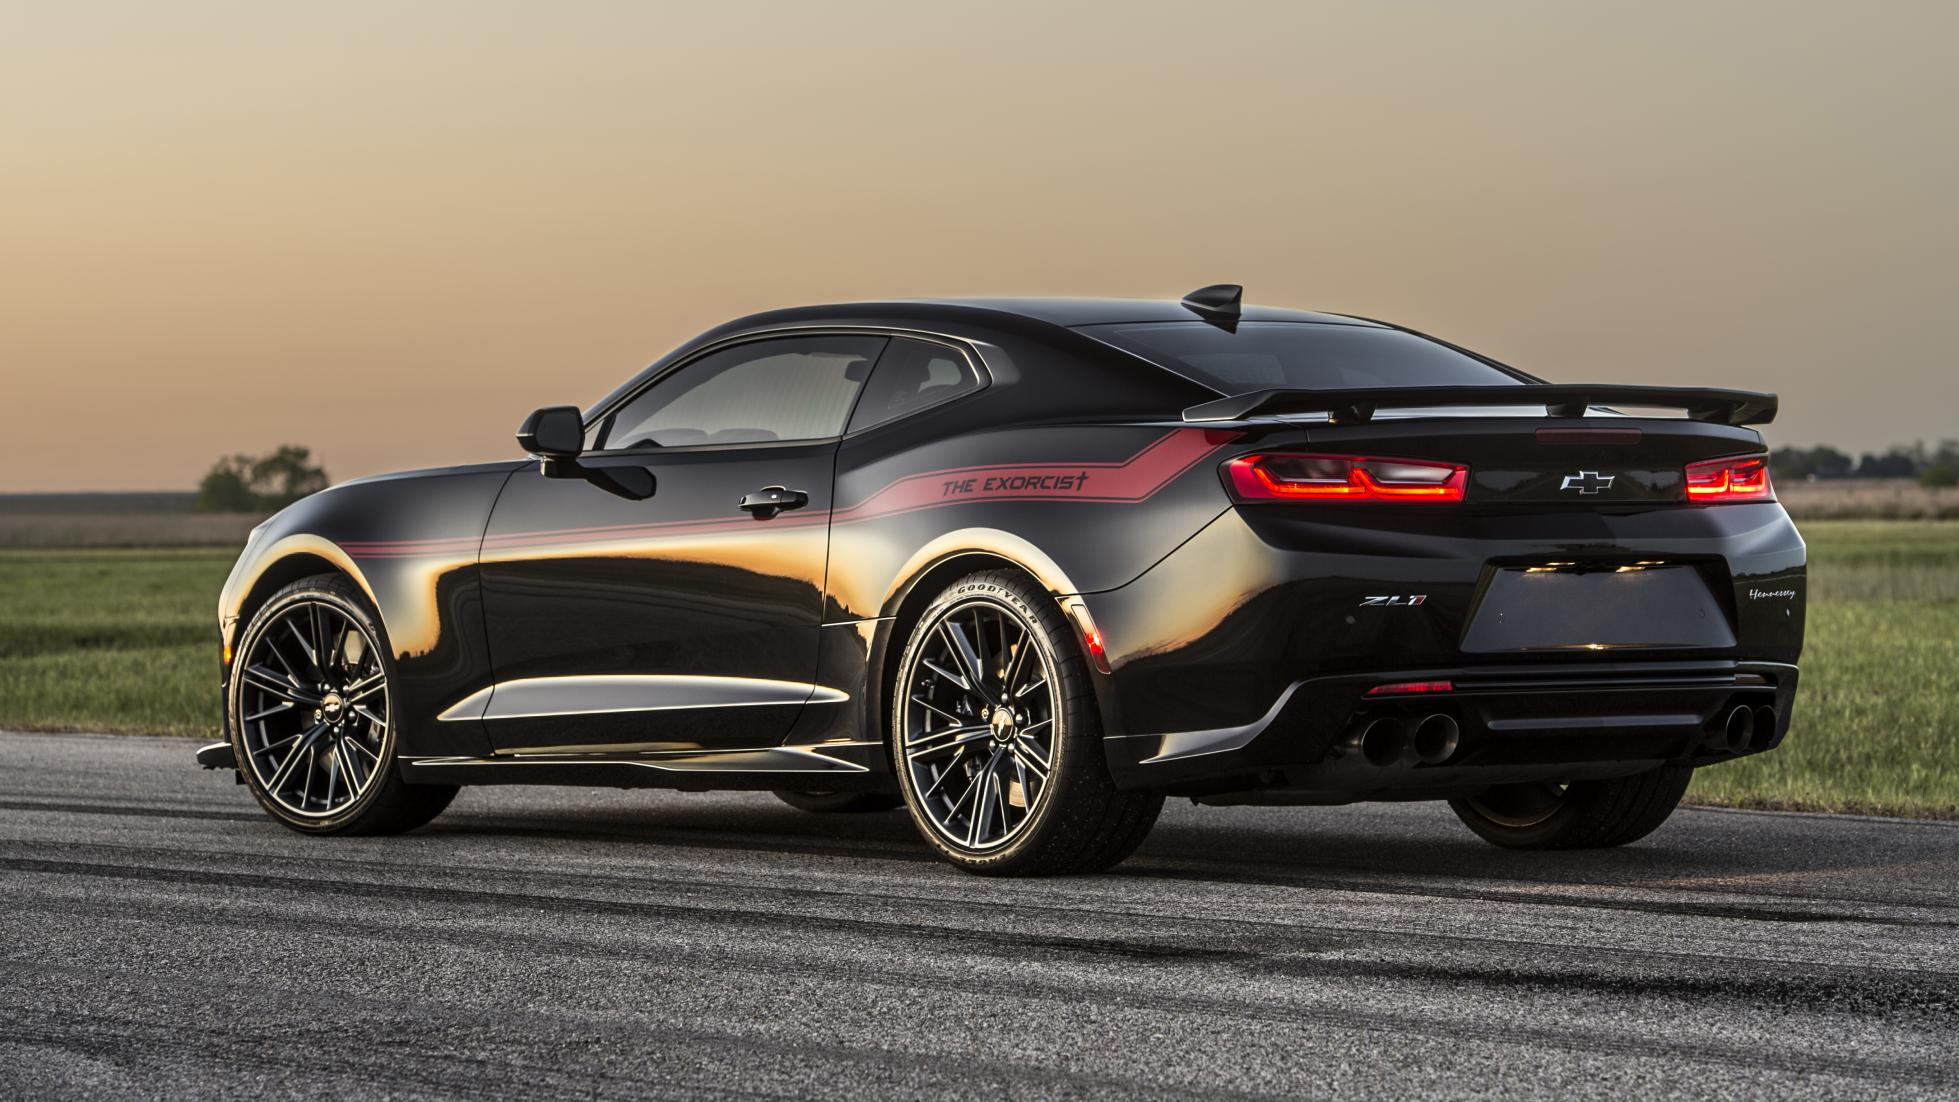 Camaro ZL1 Hennessey The Exorcist